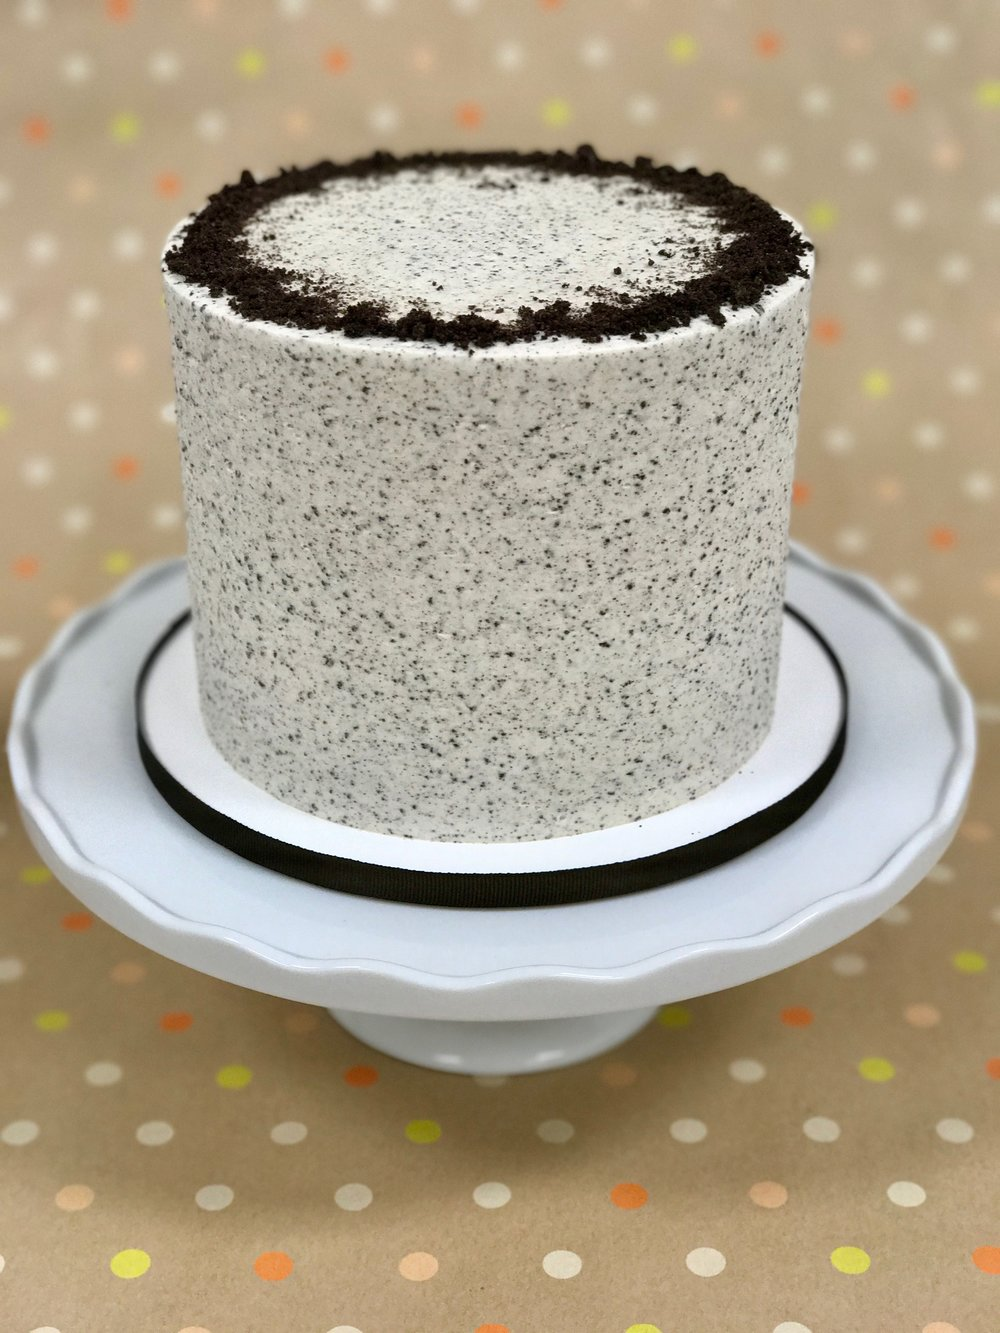 Cookies & Cream - Cake: Vanilla Bean with Crushed OreosFilling: Oreo Swiss Meringue ButtercreamFrosting: Oreo Swiss Meringue Buttercream and Crushed Oreos